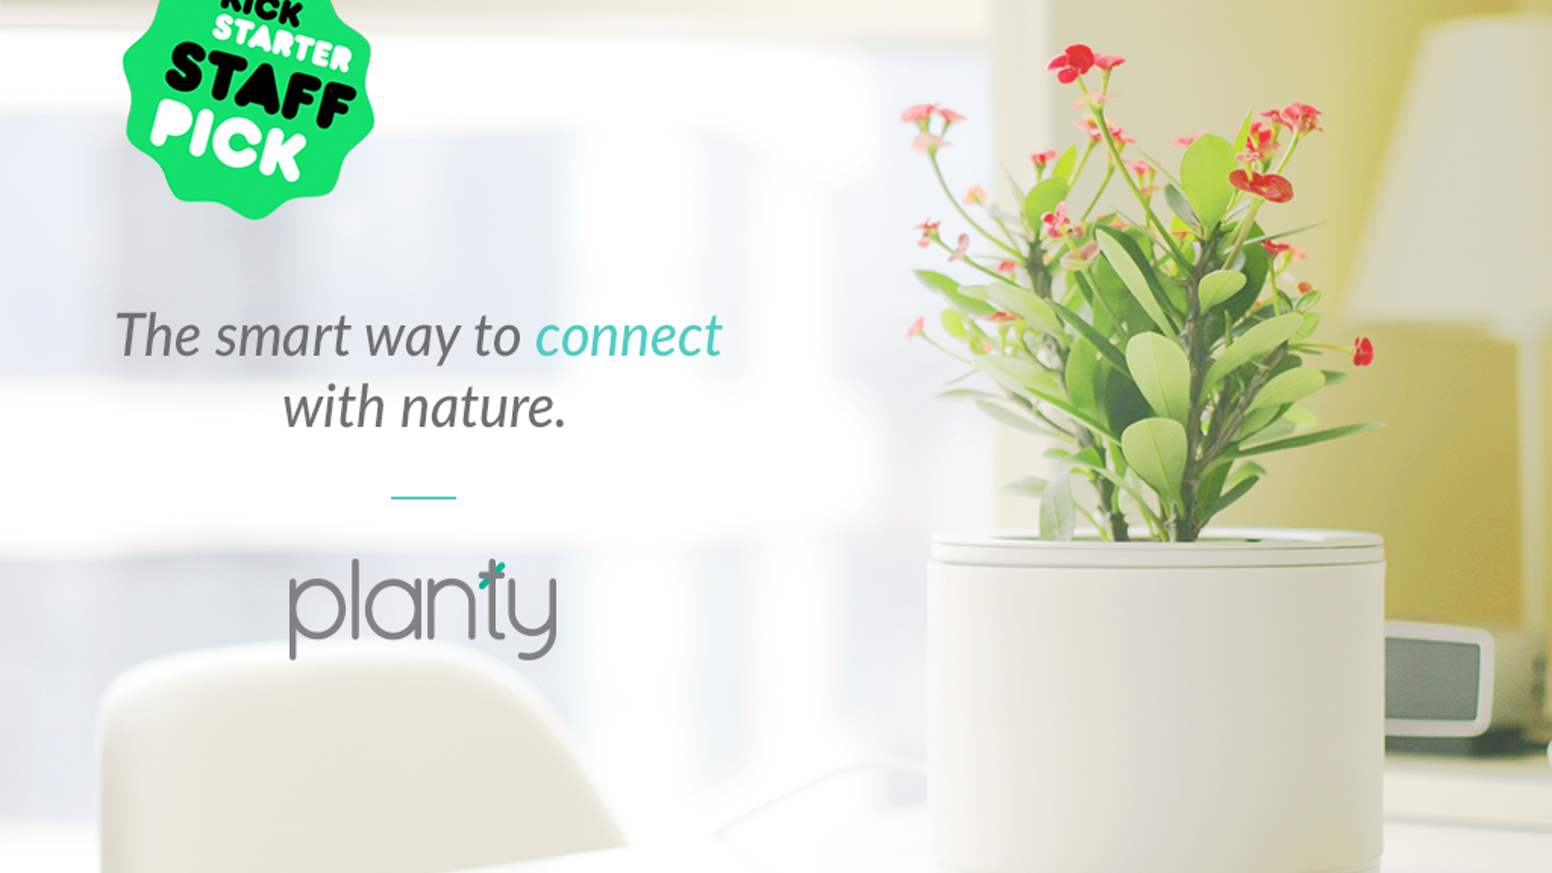 Planty: The Smart Way to Connect with Nature